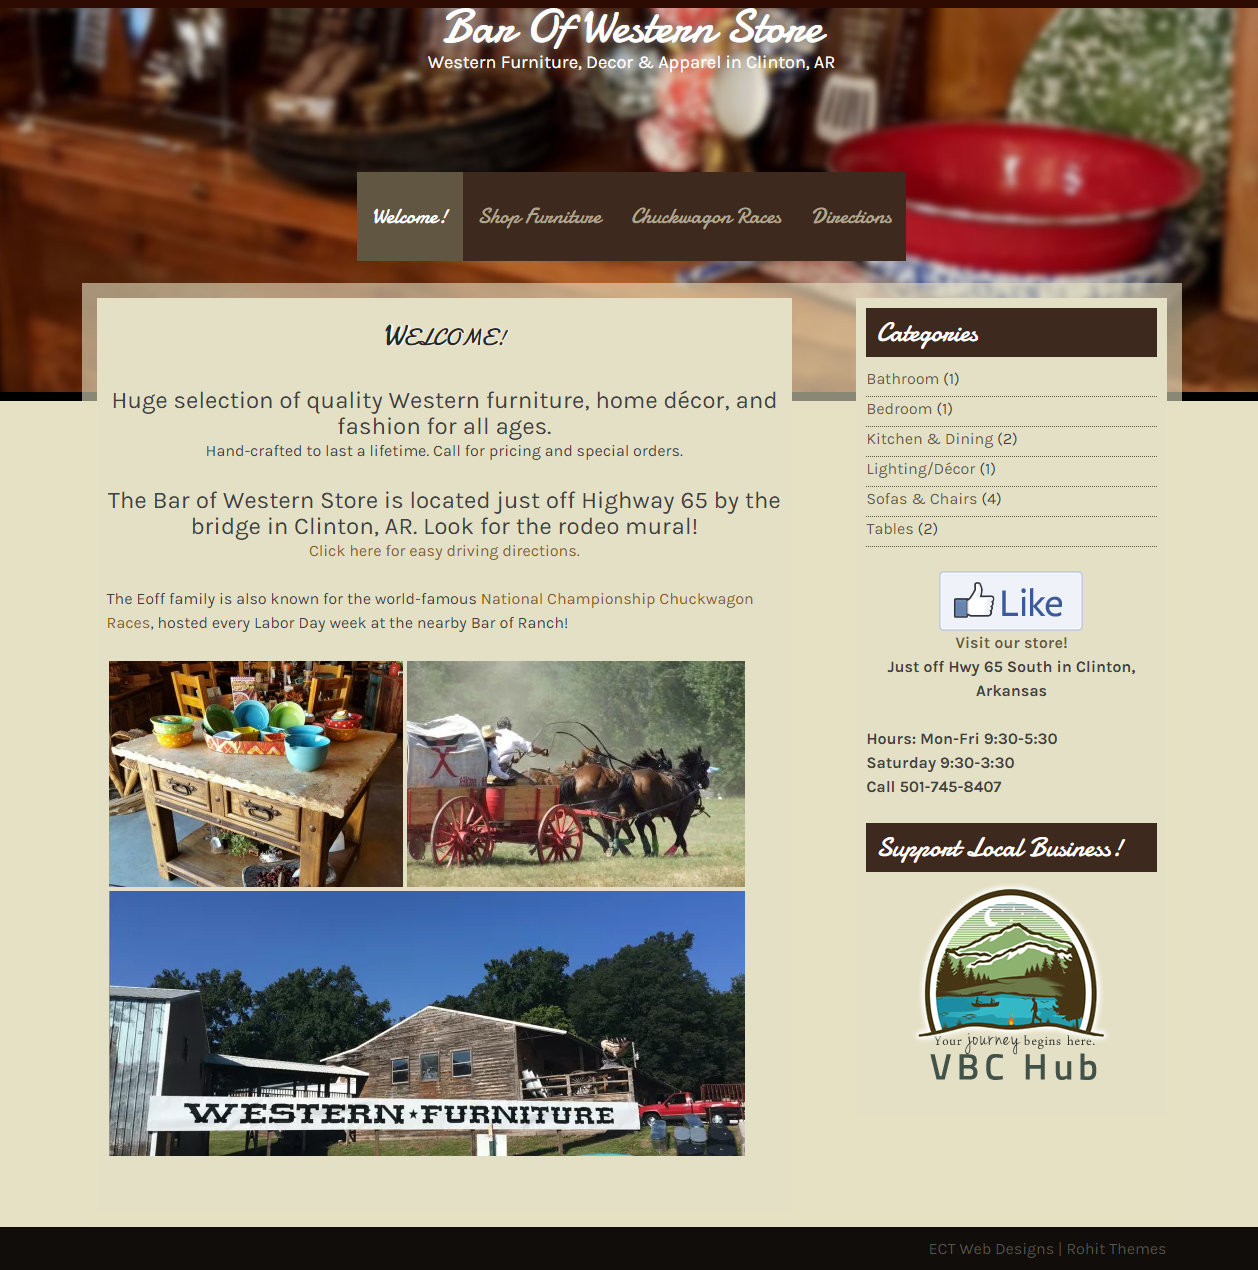 Bar of Western Store in Clinton, AR - Jessica Crabtree ECT Web Designs